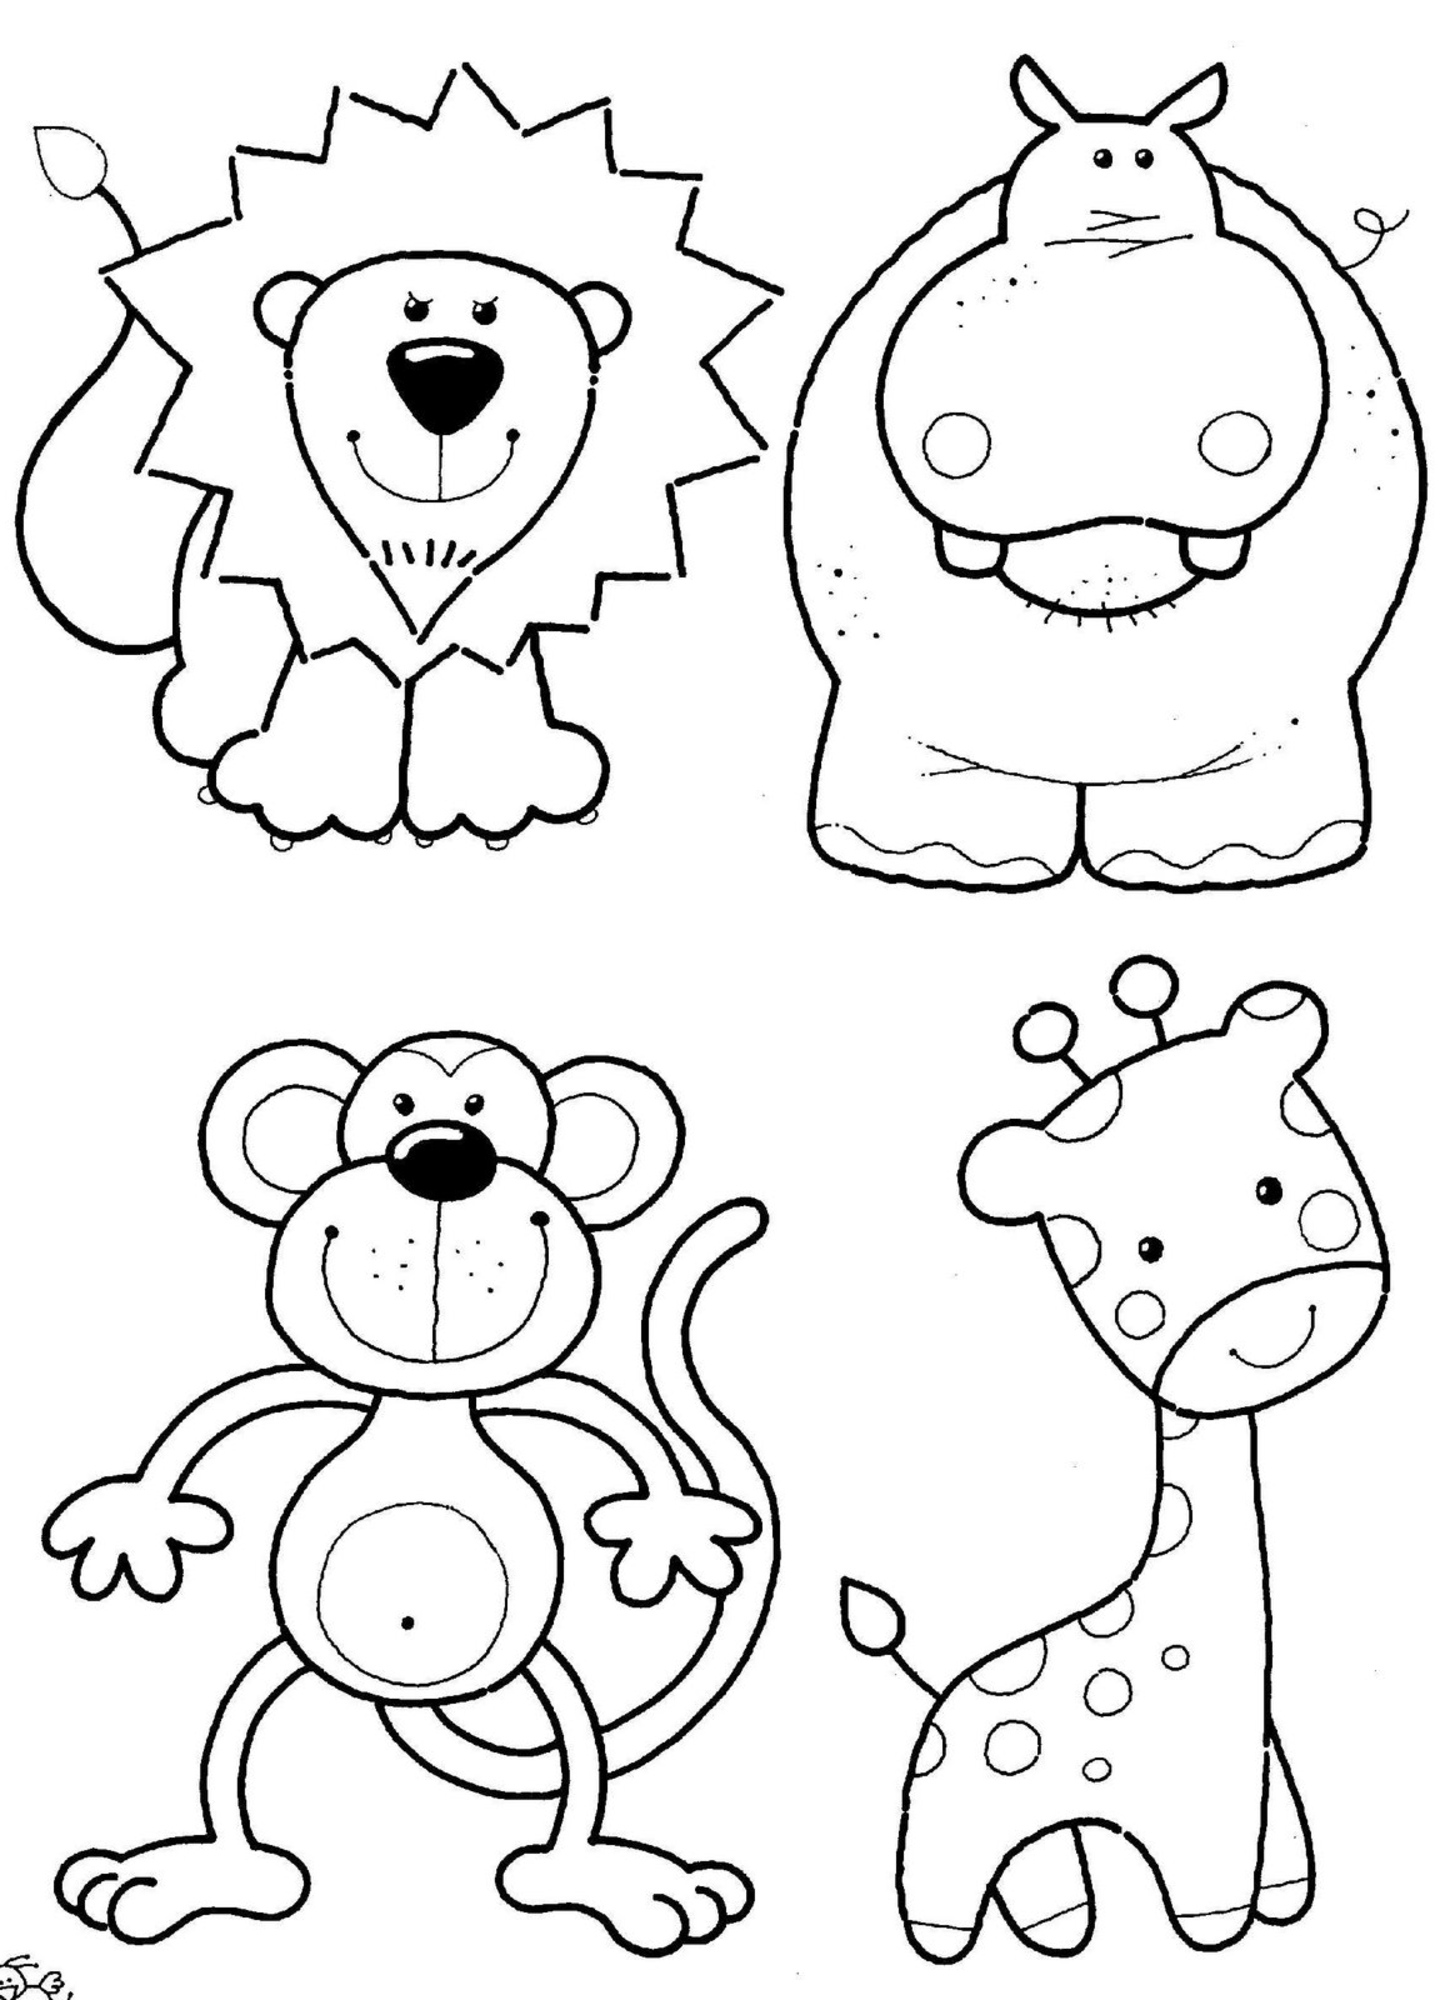 animal coloring animal coloring pages best coloring pages for kids animal coloring